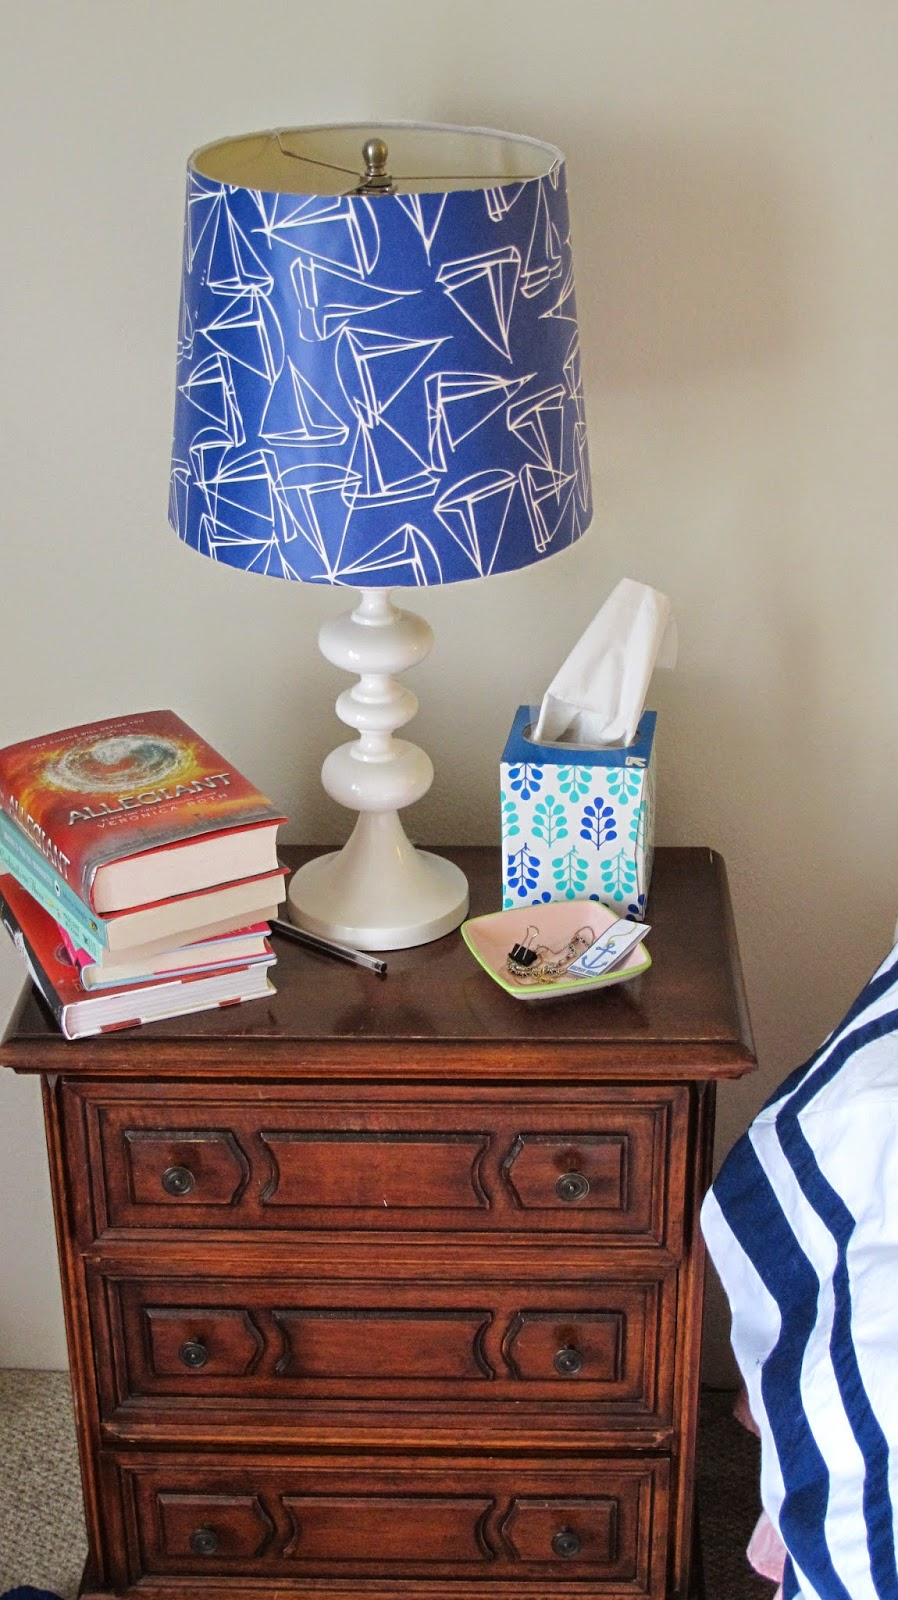 Nautical by Nature: DIY Nautical Wallpaper Lamp Shade Project